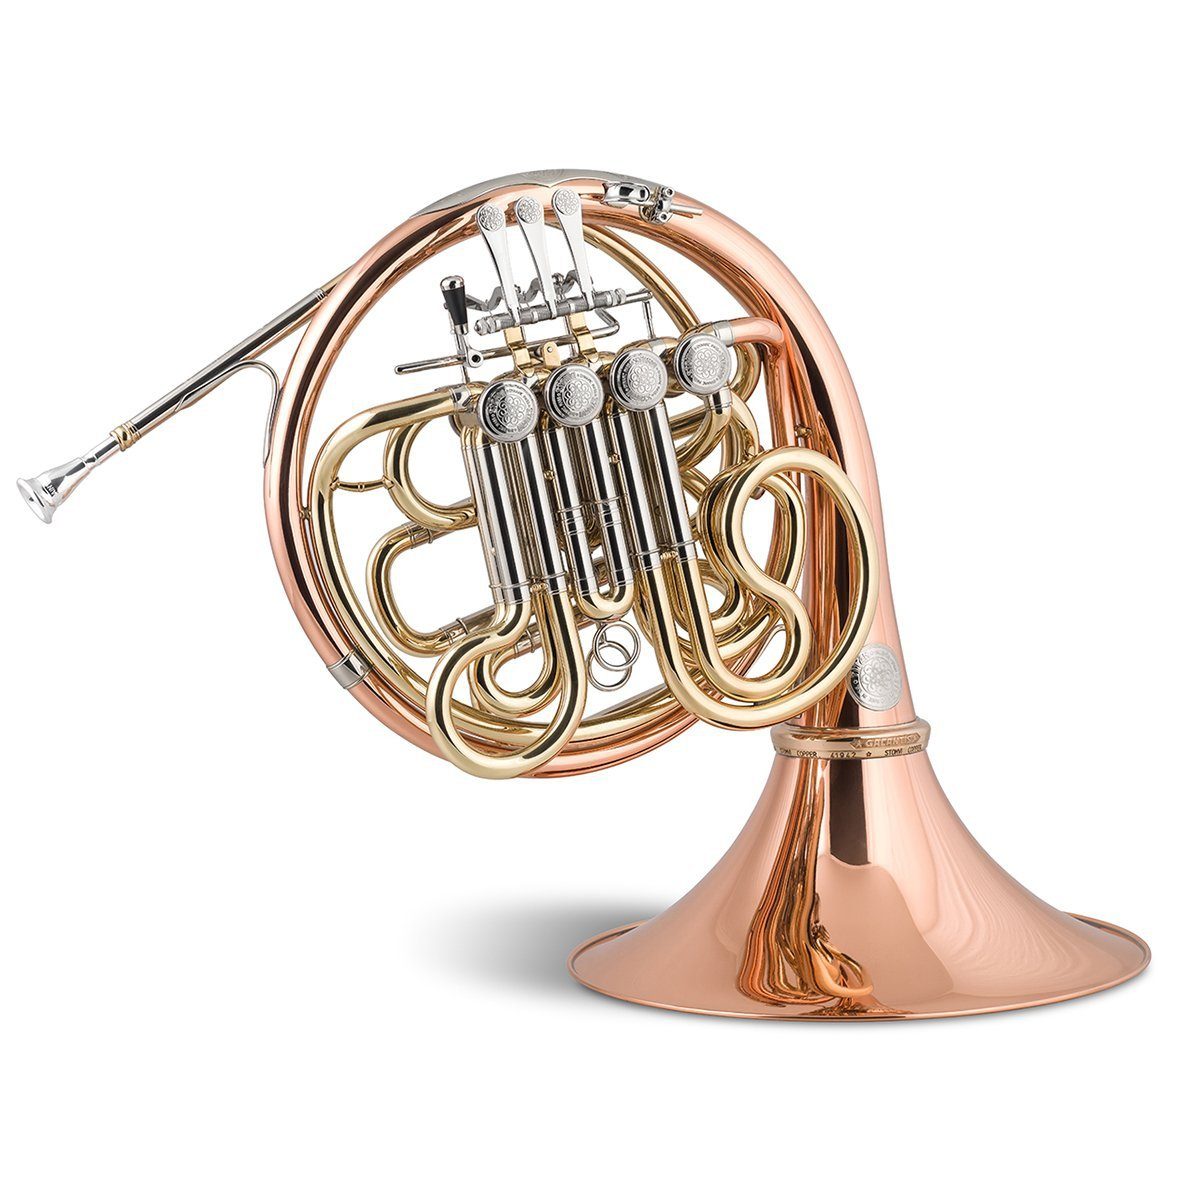 Stomvi - Titán SEIS Bb/F Double Copper French Horns (Geyer System)-French Horn-Stomvi-Music Elements